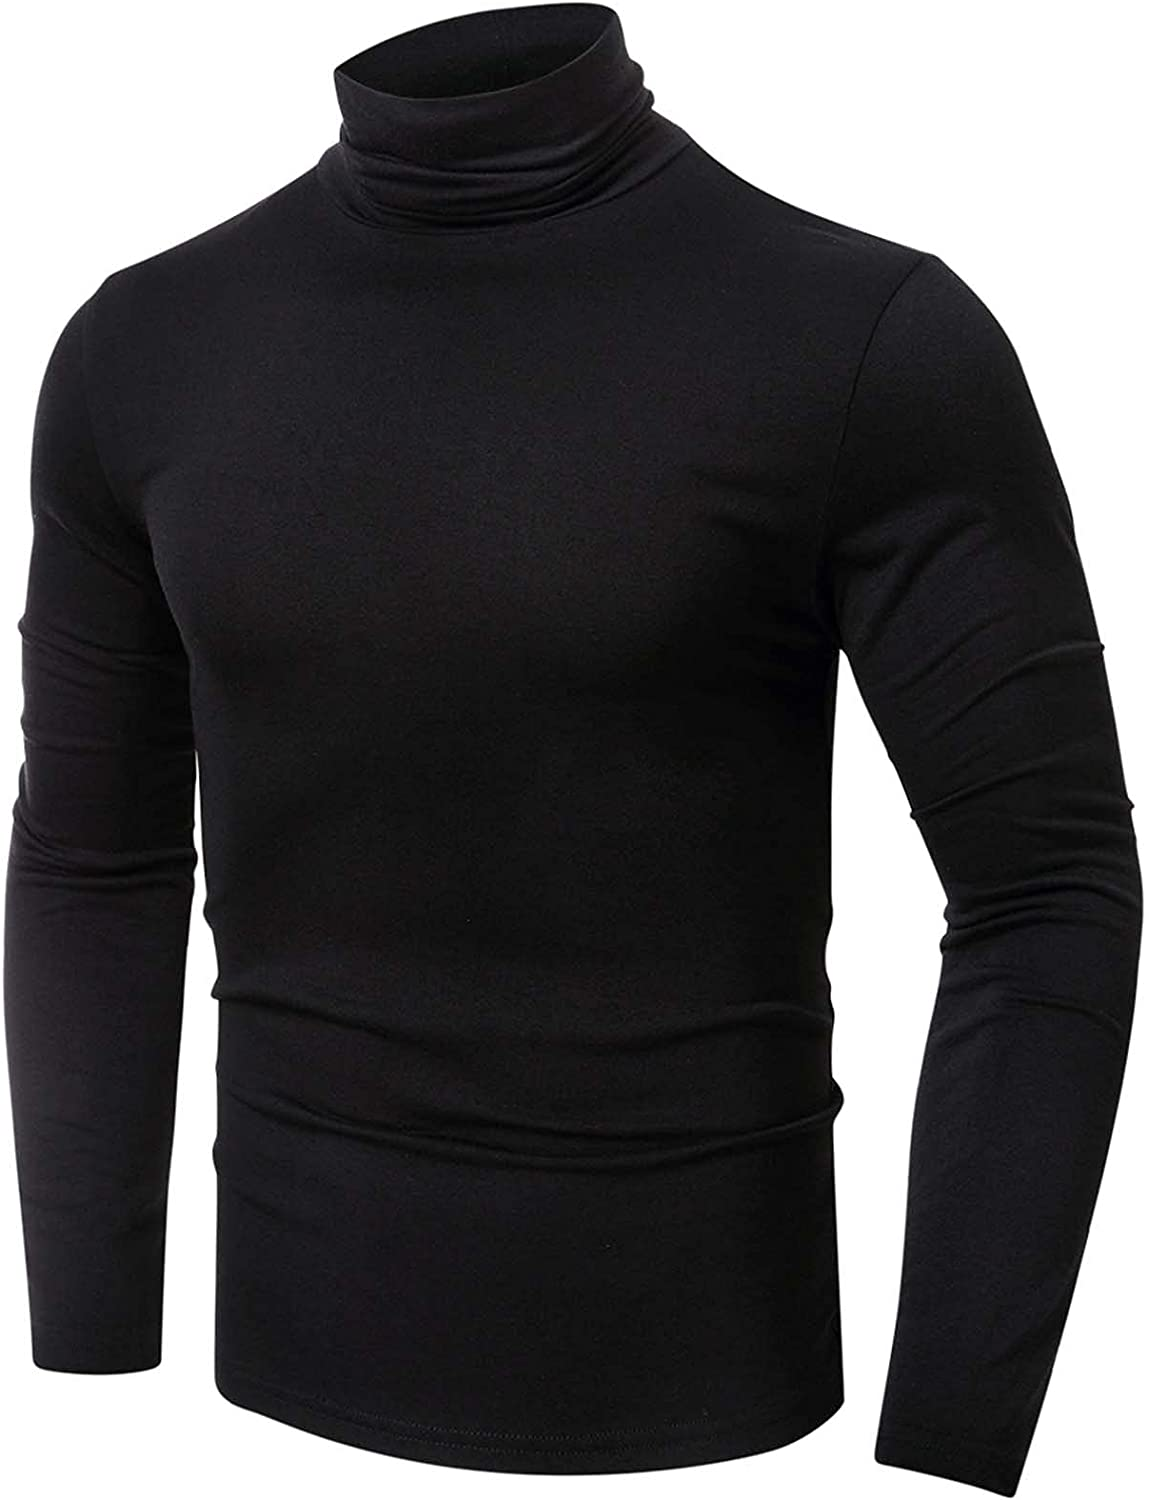 Bravetoshop Mens Turtleneck Pullover Tops Slim Fit Casual Fall Winter Solid Color Basic Long Sleeve T-Shirt